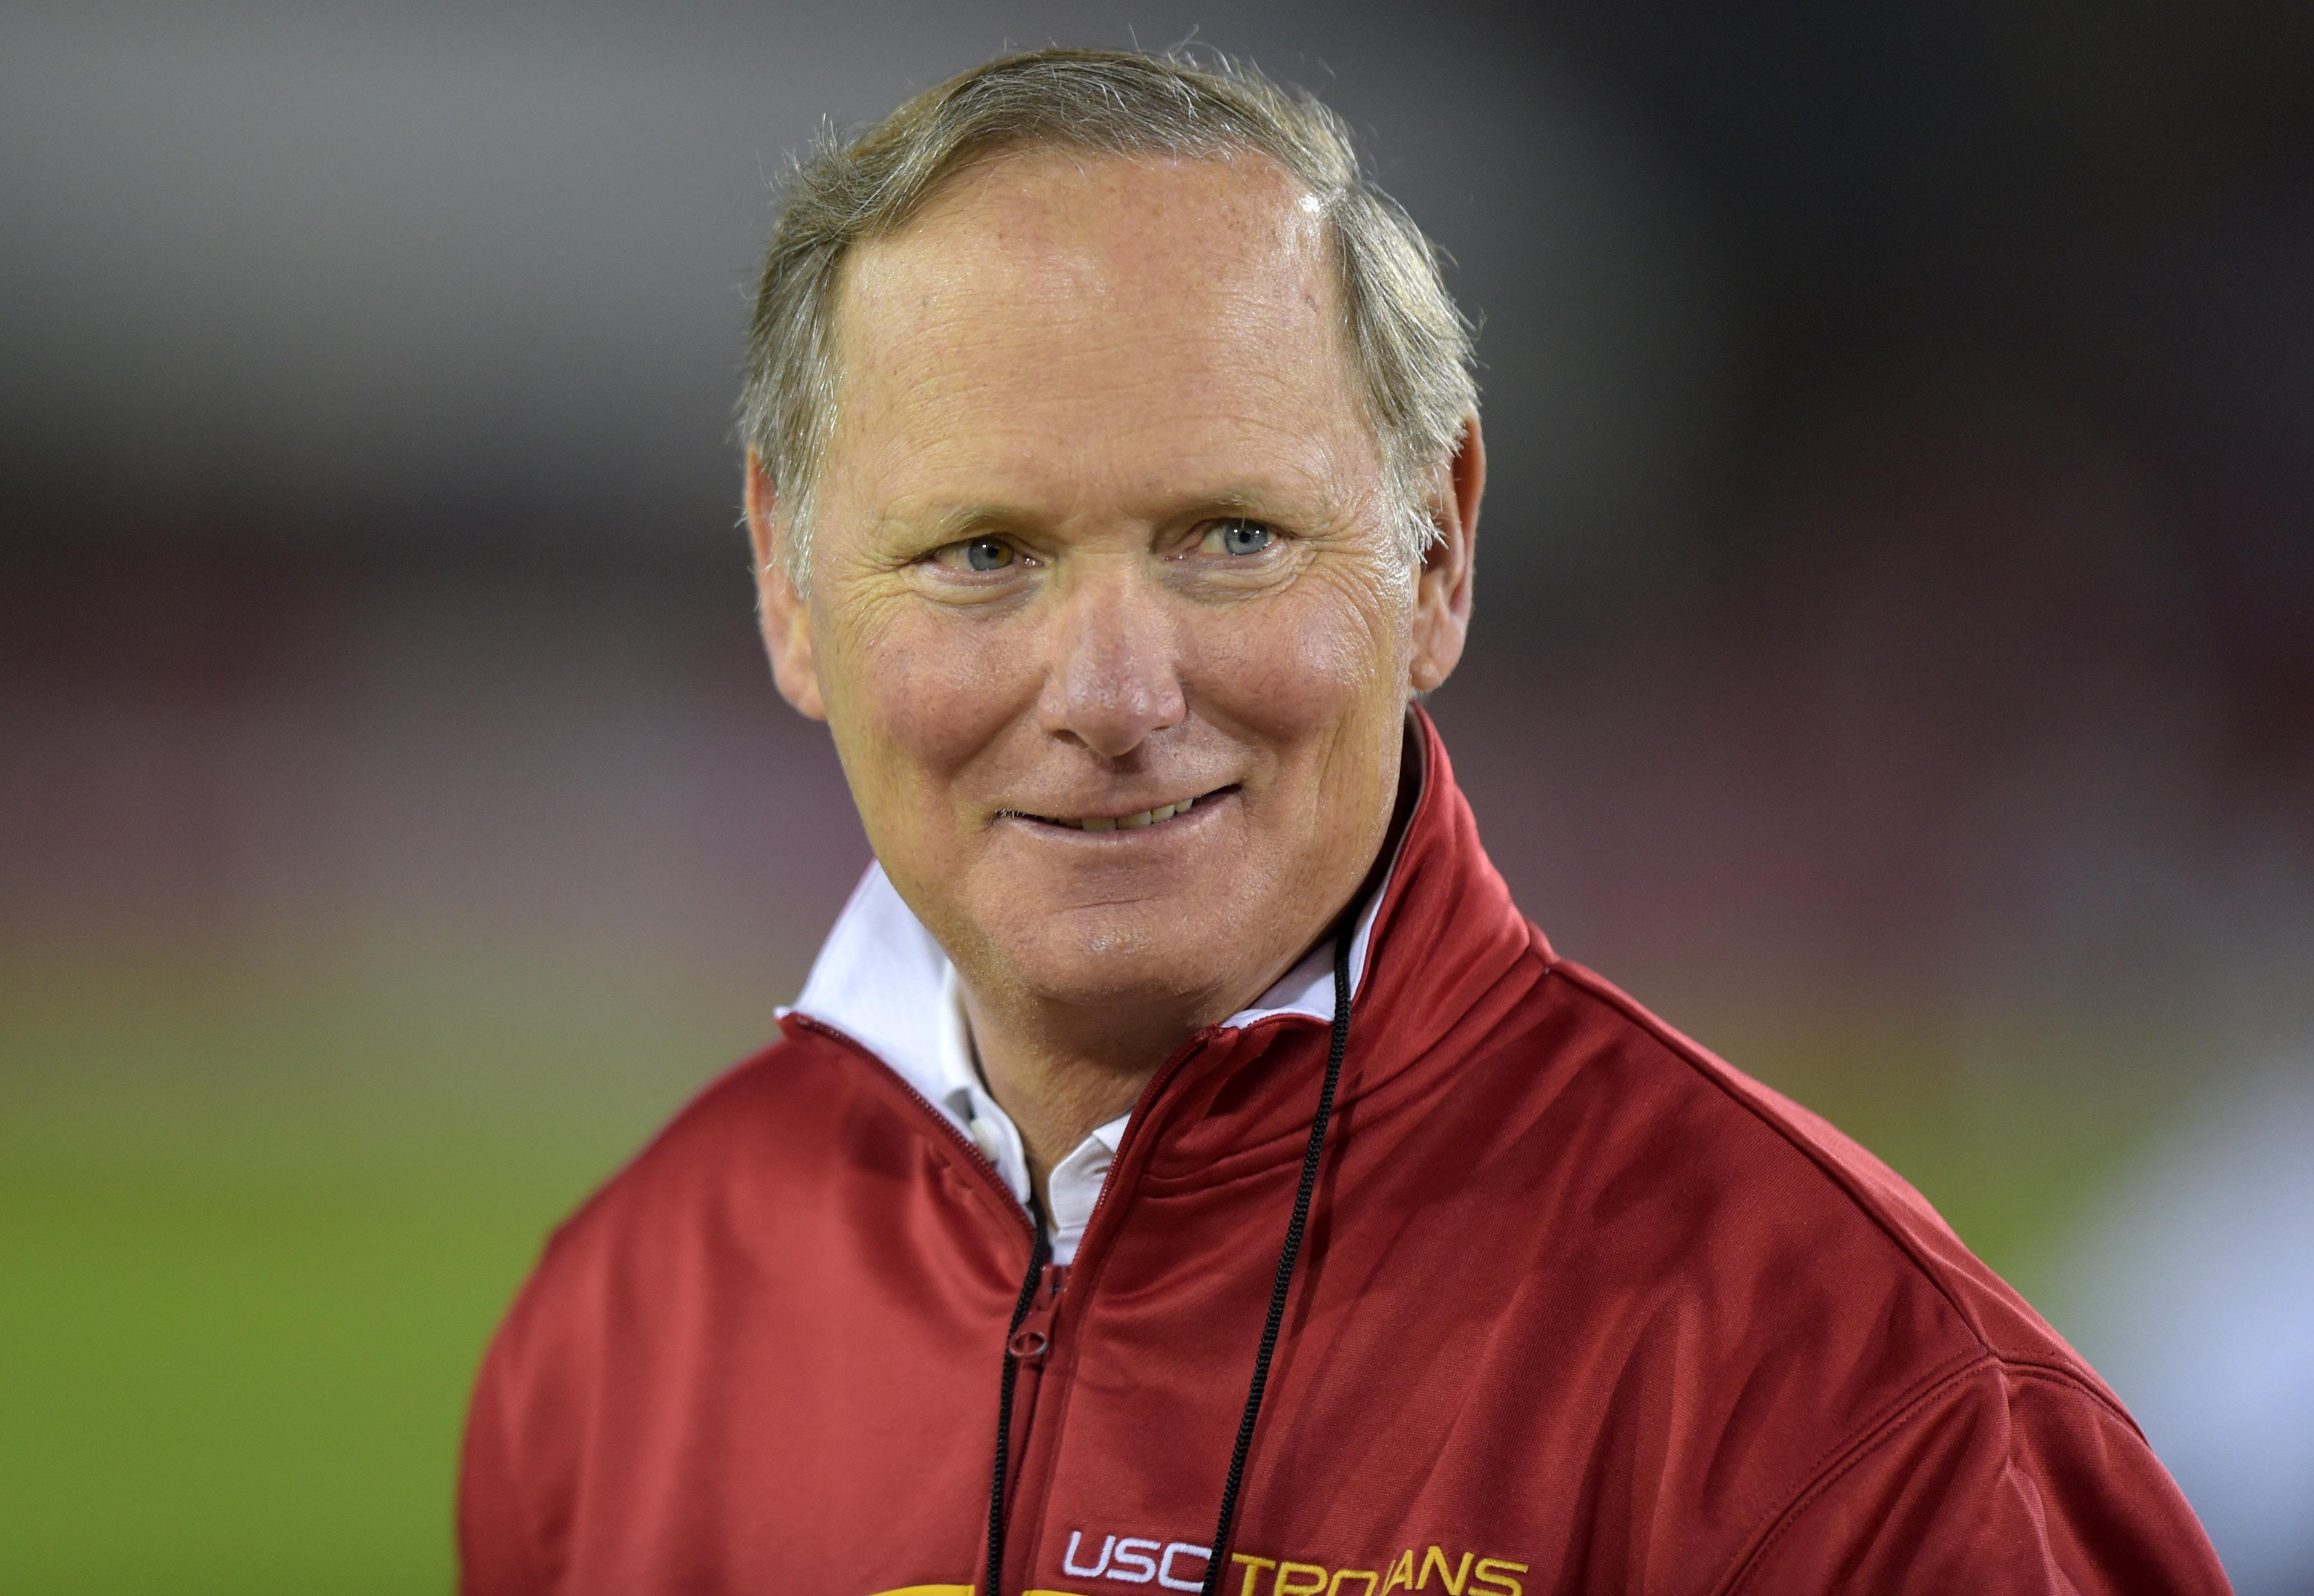 USC AD Pat Haden tweets he's skipping CFP meetings in Indianapolis to honor his gay son